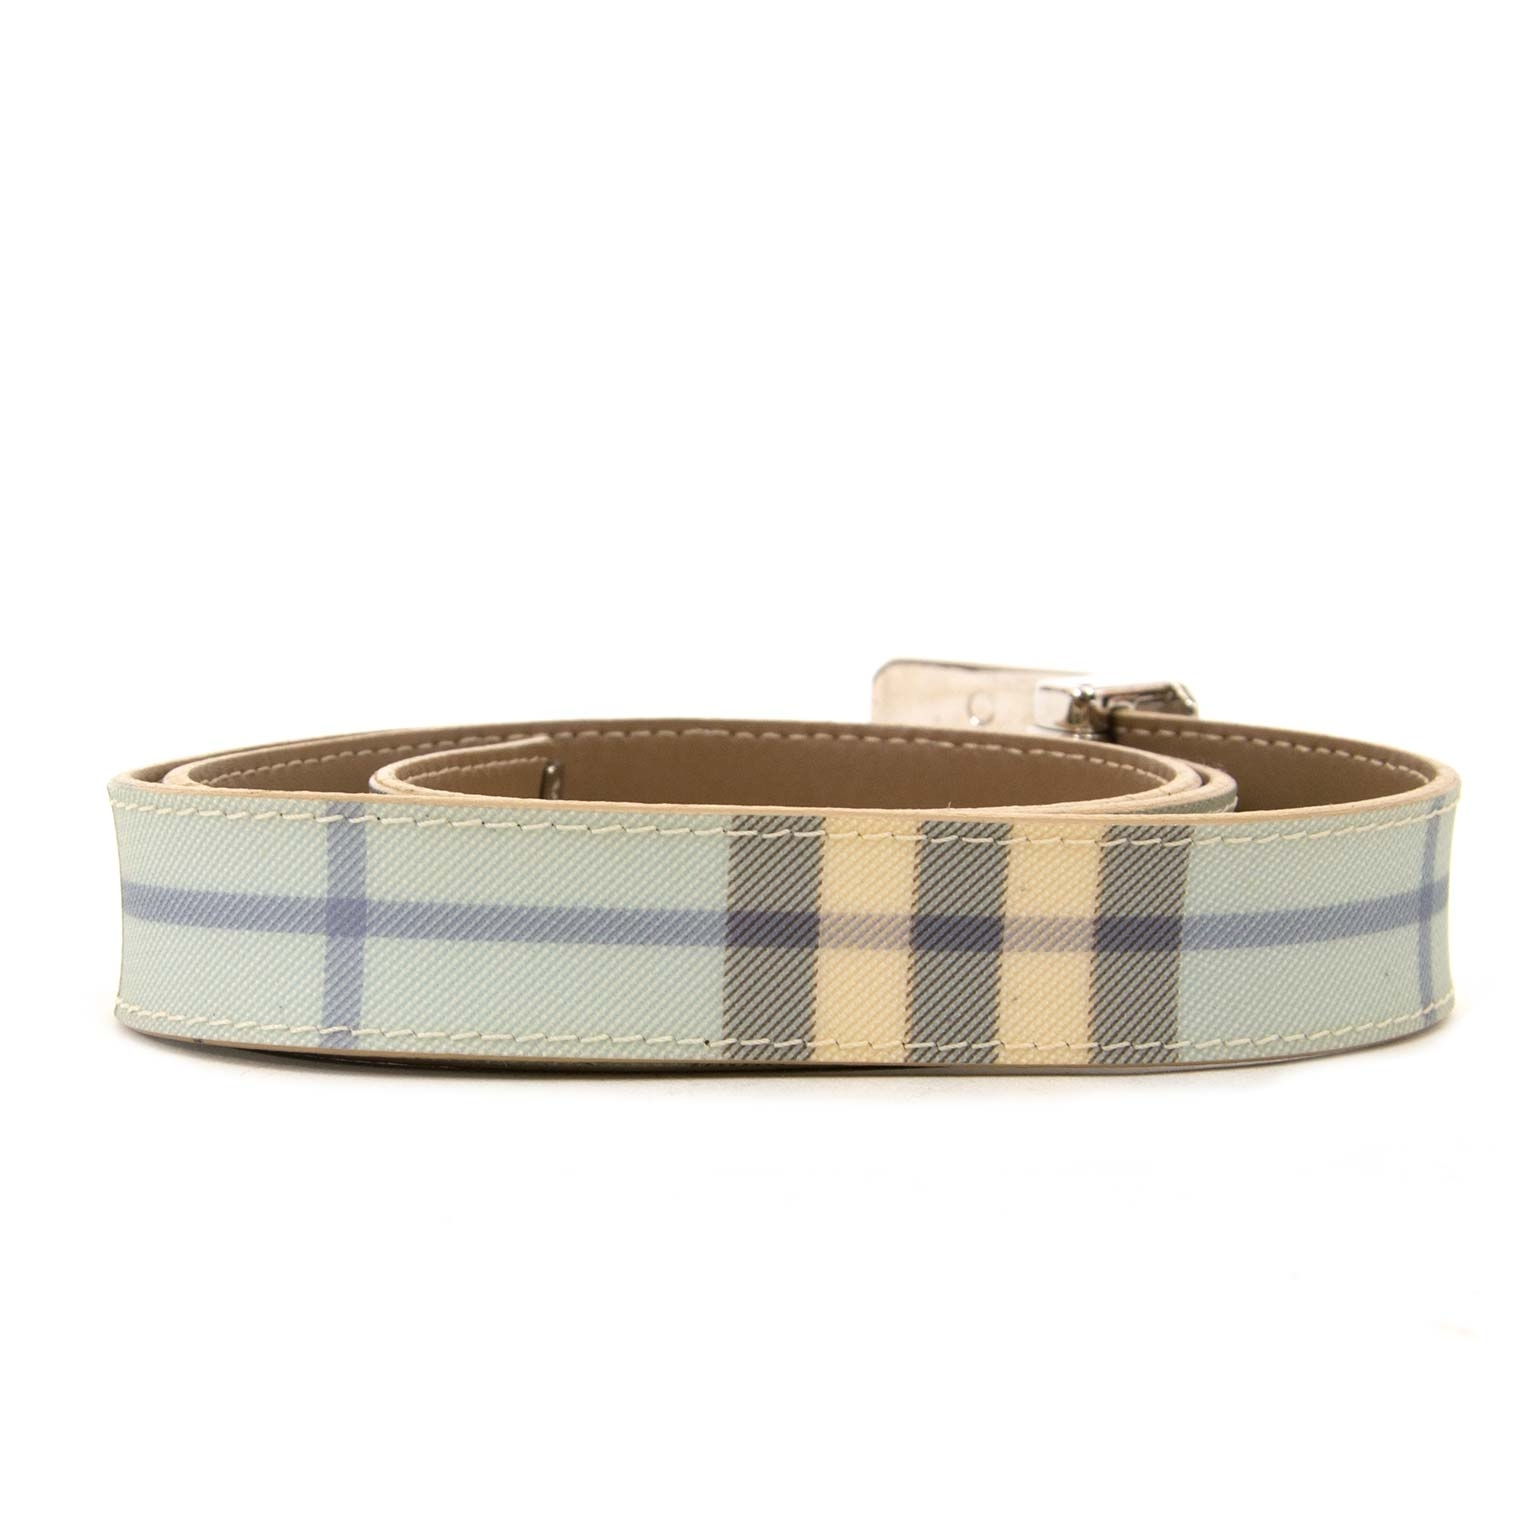 burberry light blue belt now for sale at labellov vintage fashion webshop belgium